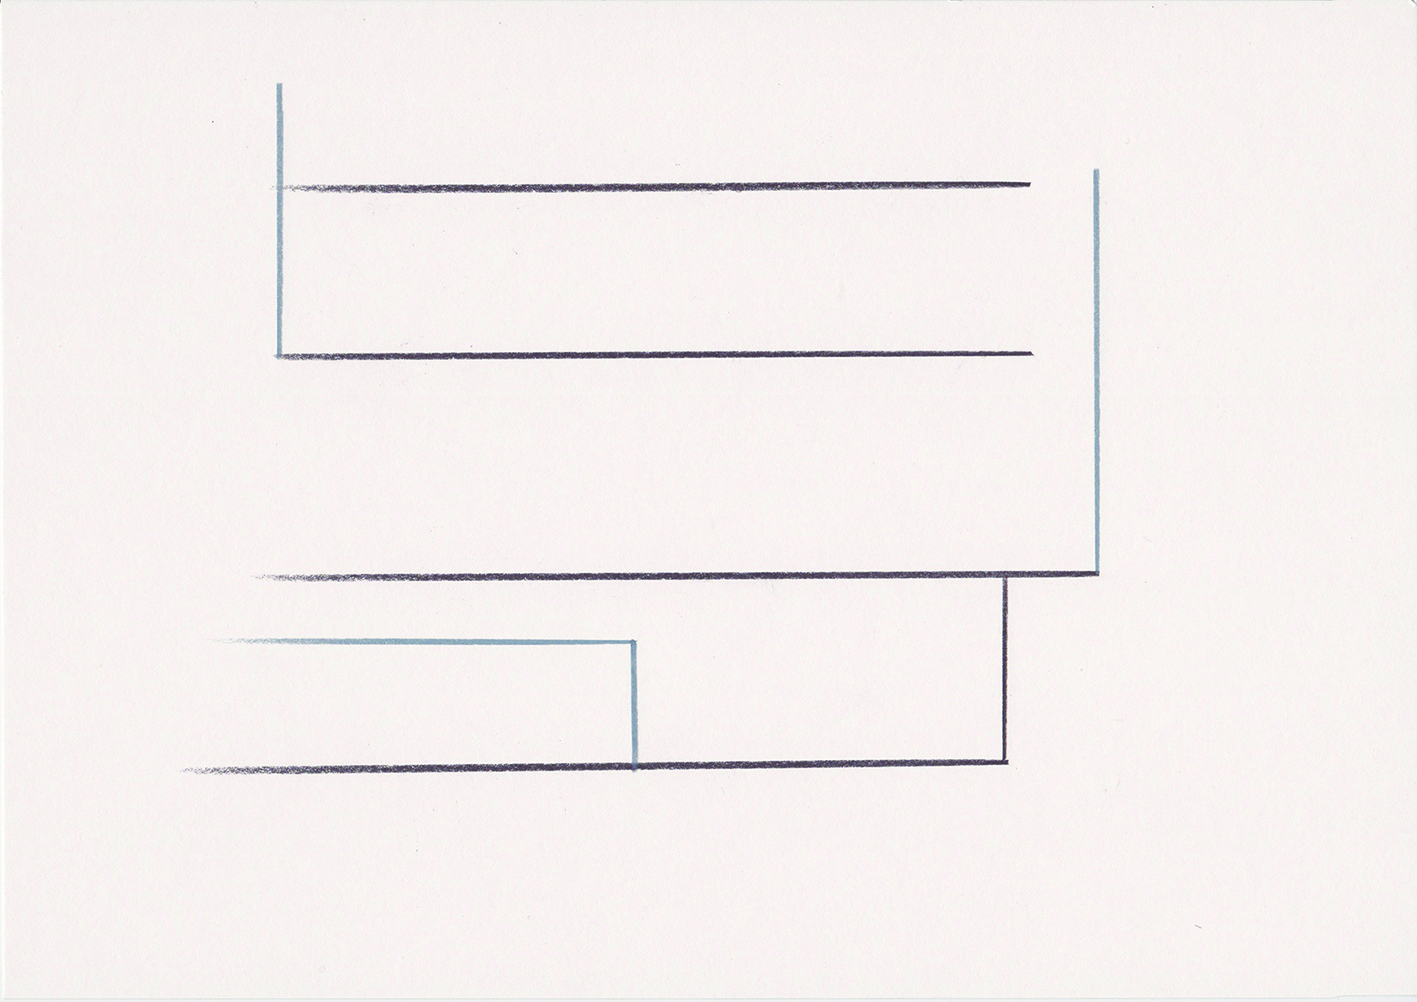 stitt 'Harmony Heights Vlll' pencil on paper, 21x30cm 2016